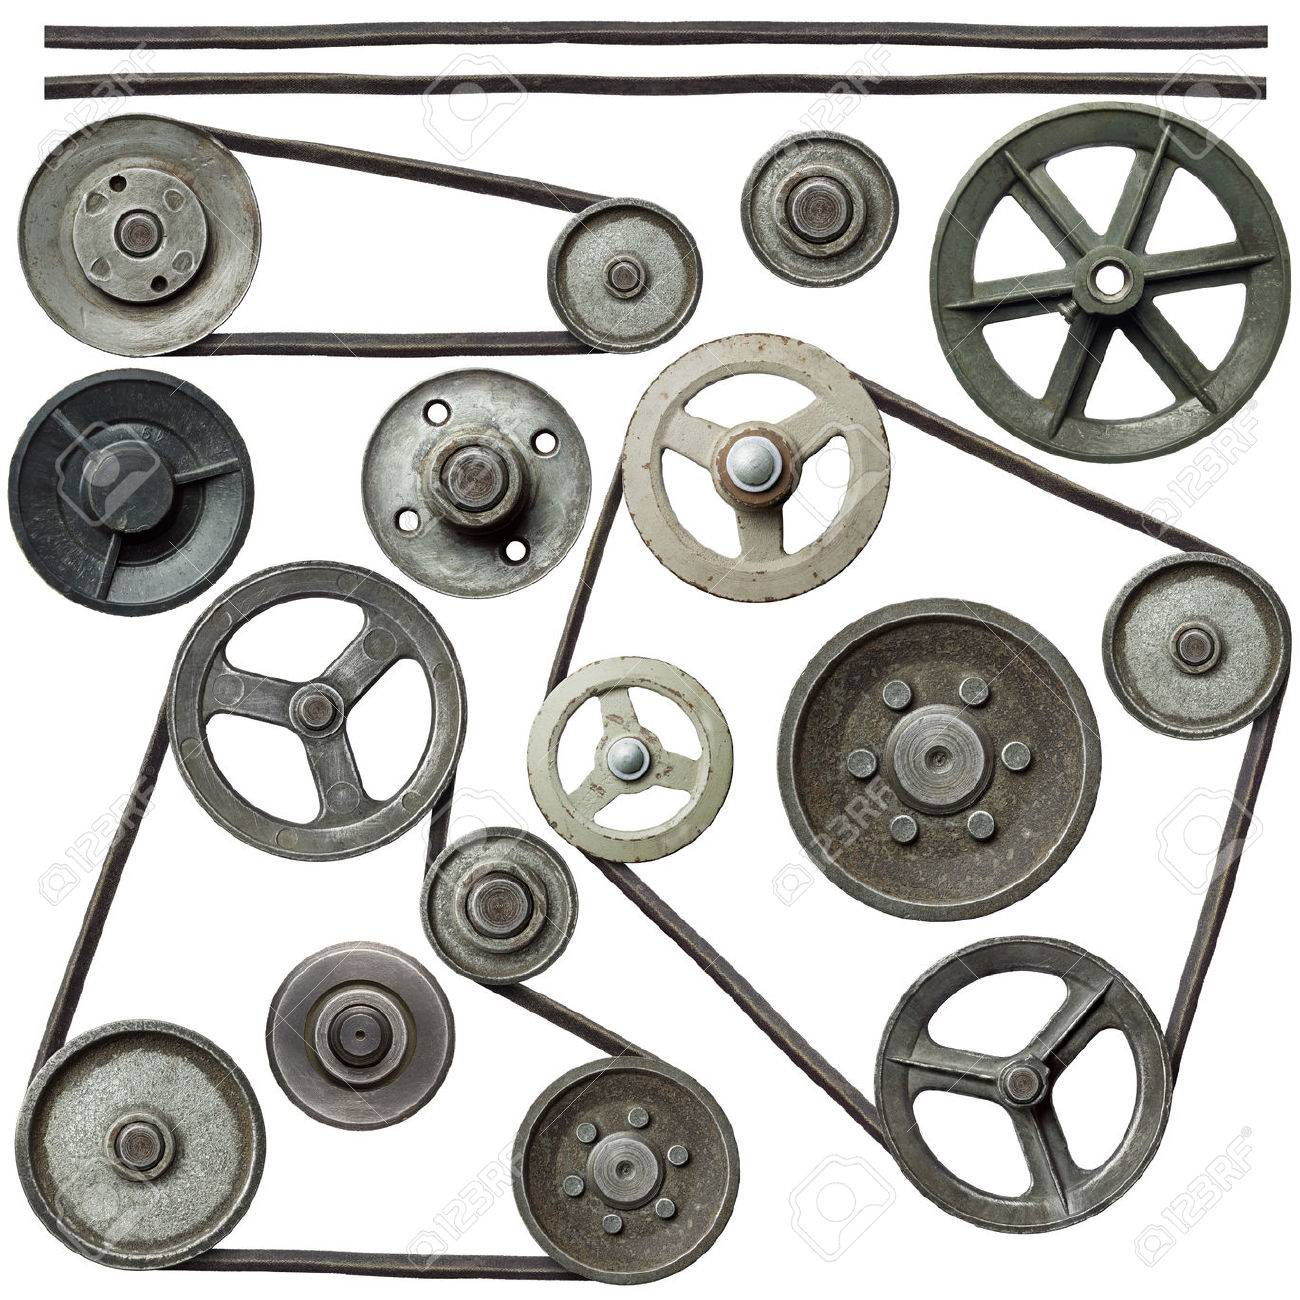 Old metal pulleys with belt. Stock Photo - 38641988